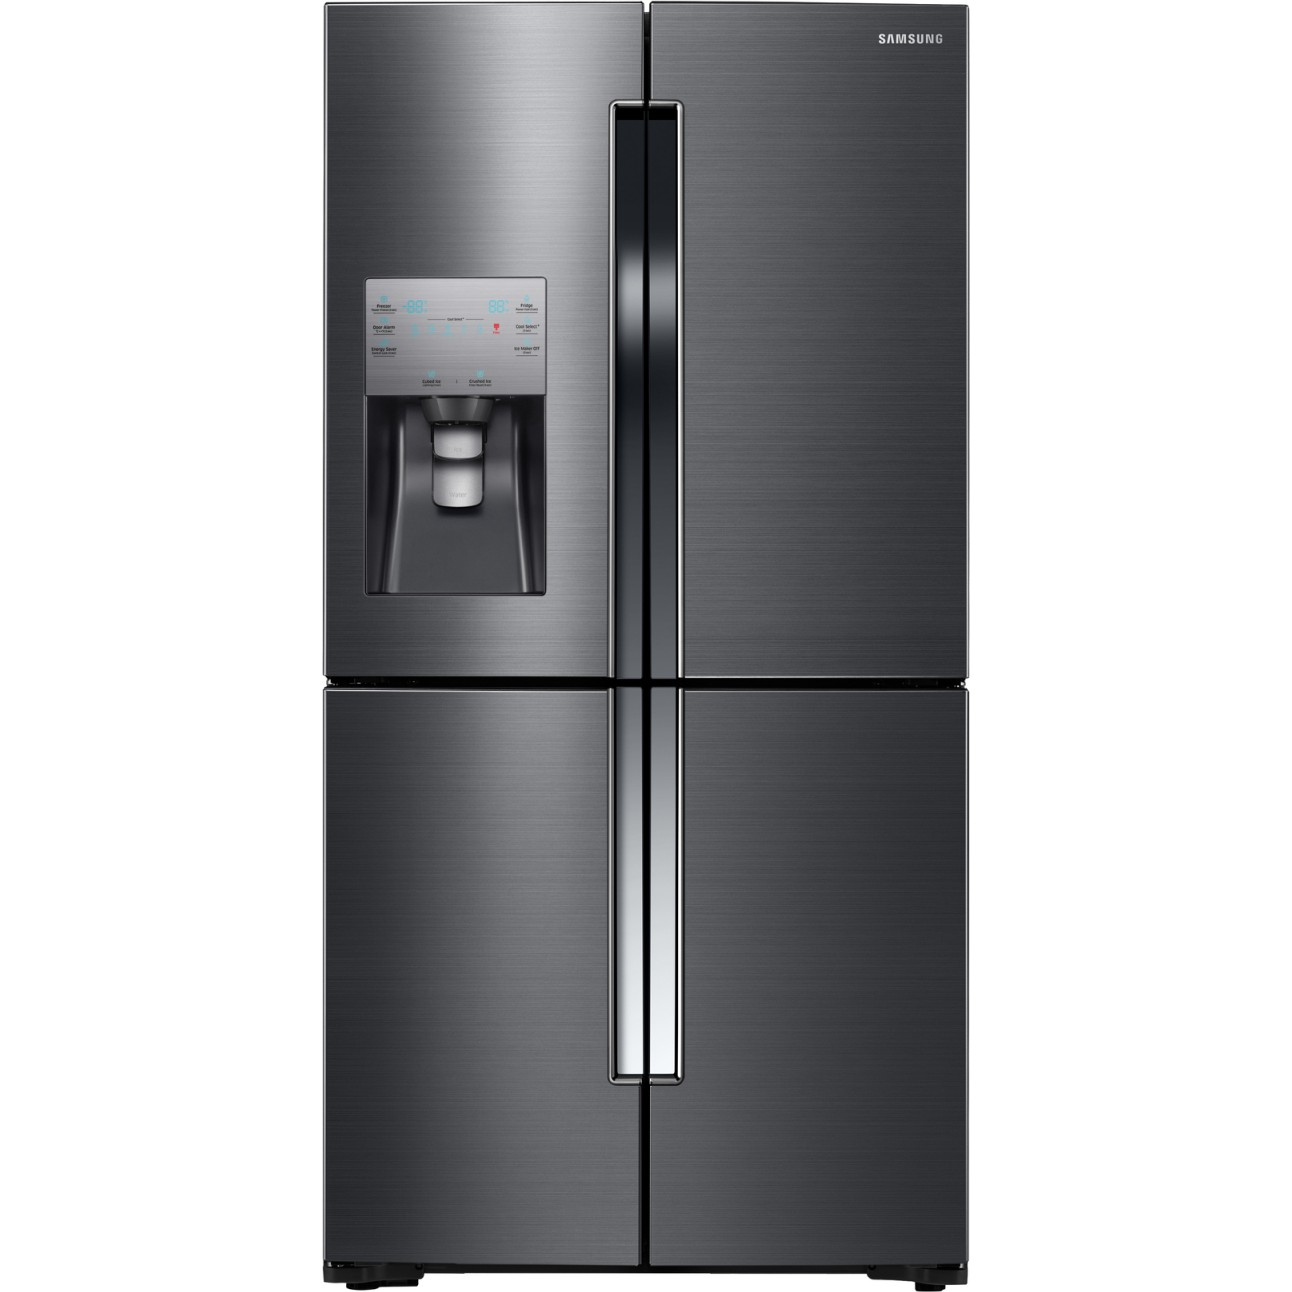 lowes kitchen appliance packages oak islands rf23j9011sg | samsung 22.5 cu. ft. counter-depth french ...